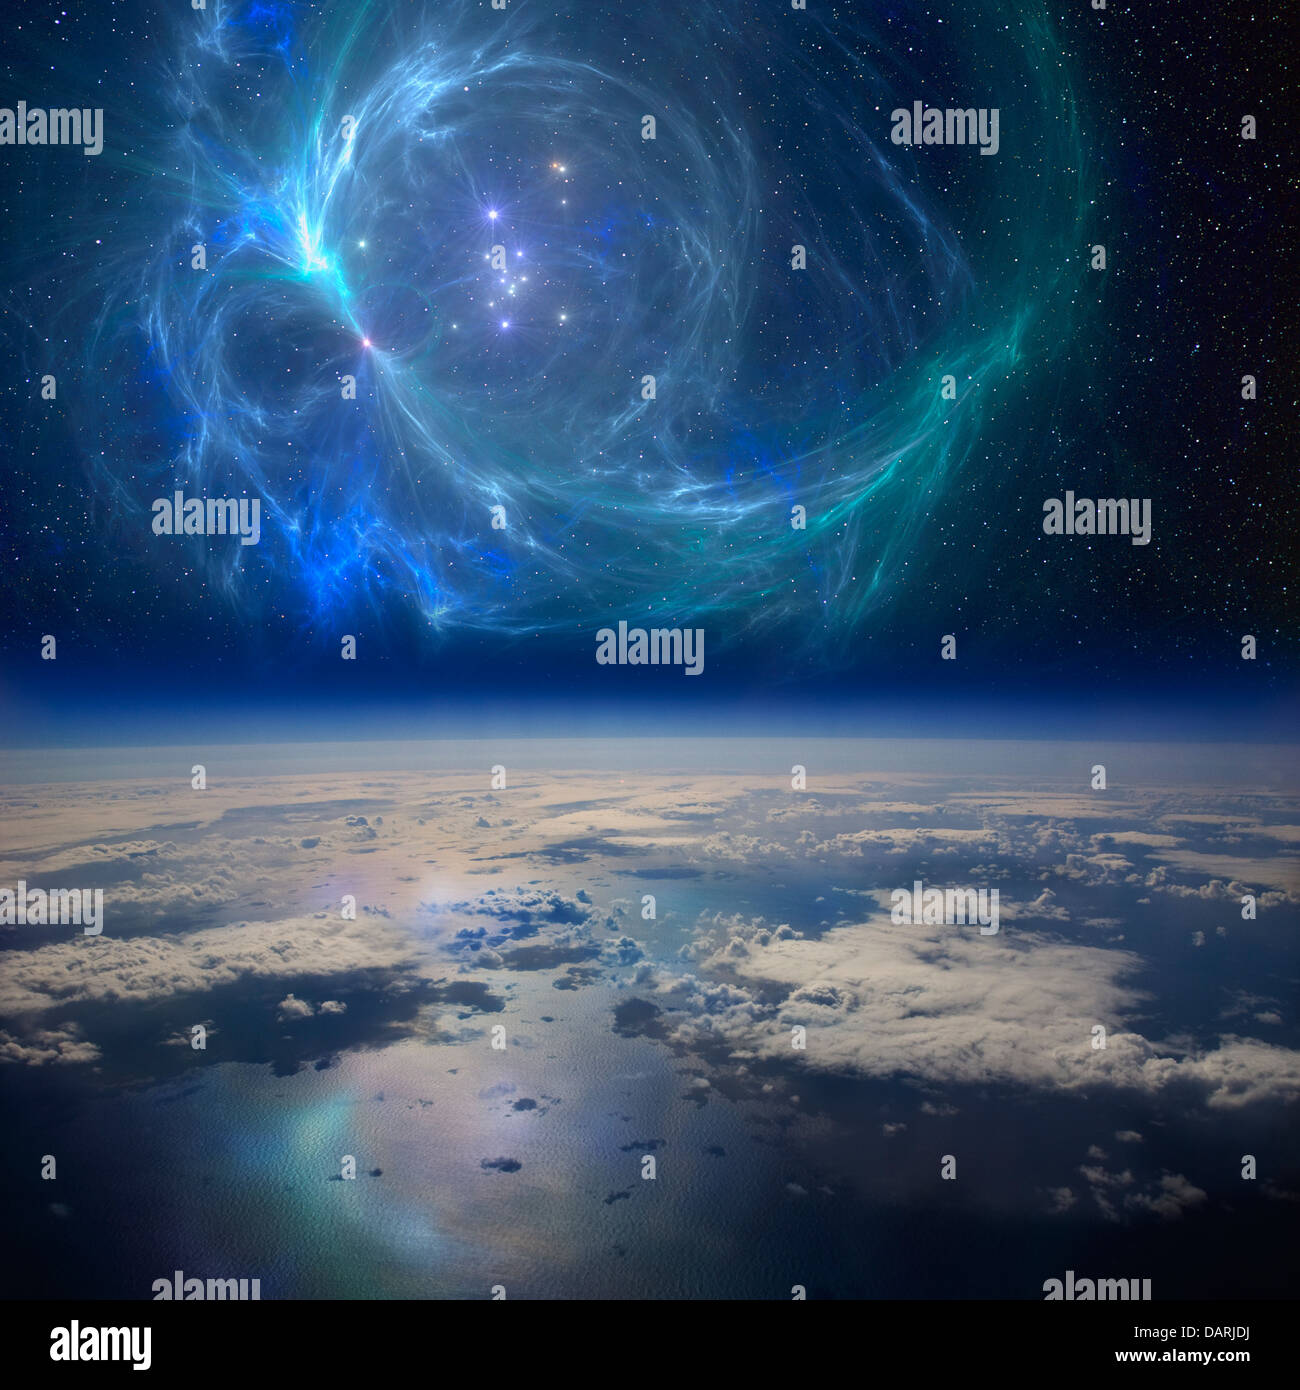 The Earth near a beautiful nebula in space. A conceptual composite image. - Stock Image